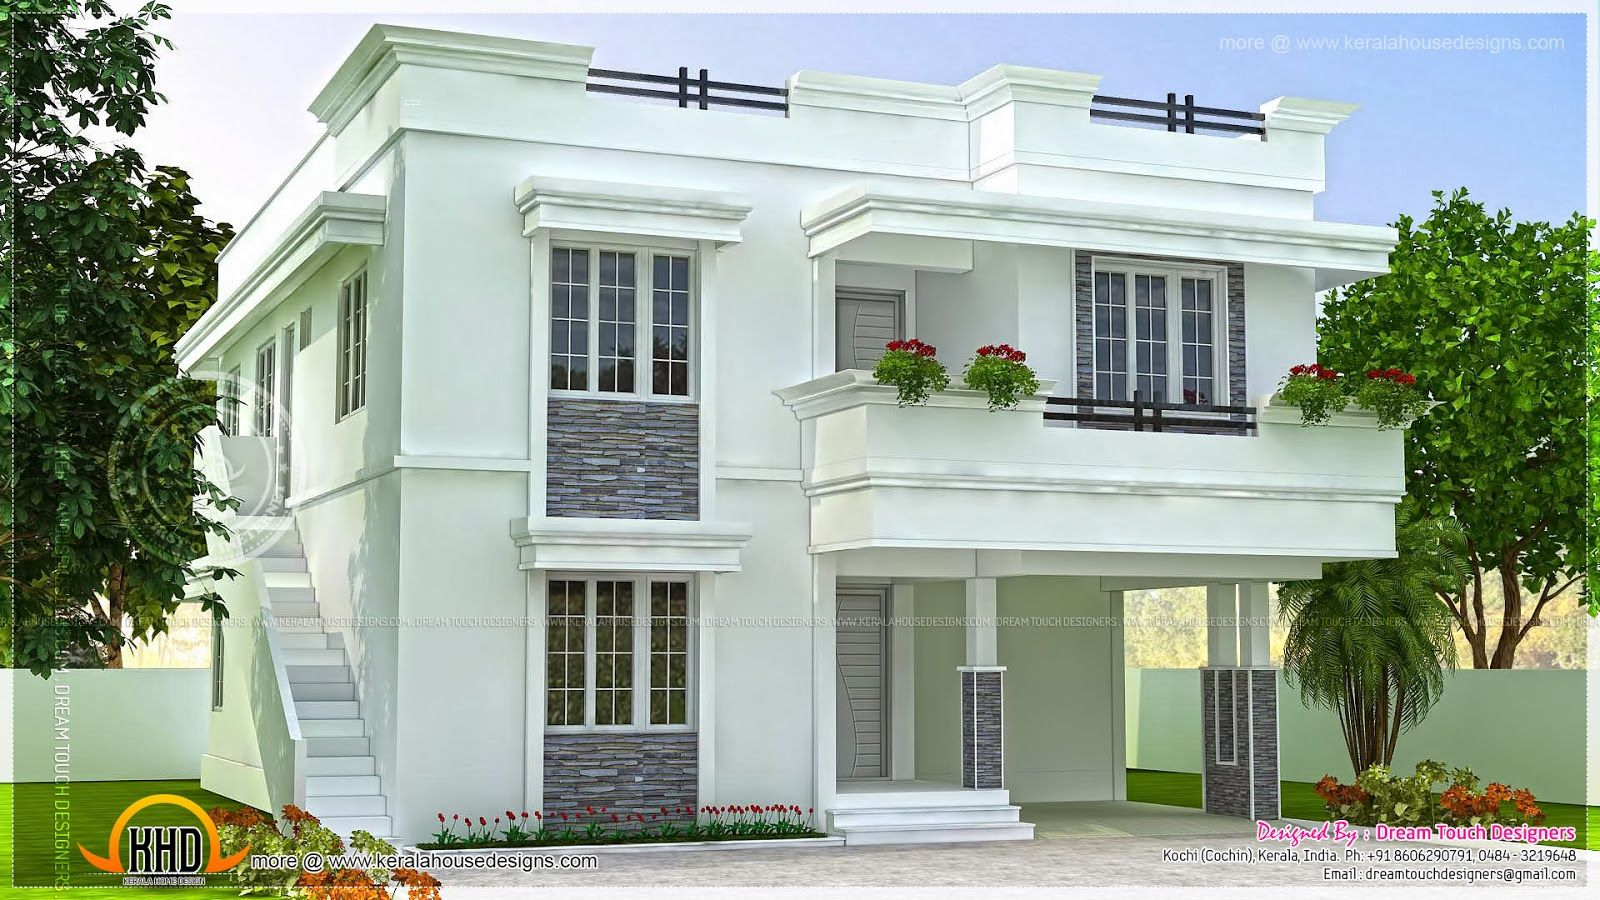 High Quality Beautiful House Designs   Rent On Flat In Noida #flatonrent #renting Awesome Design